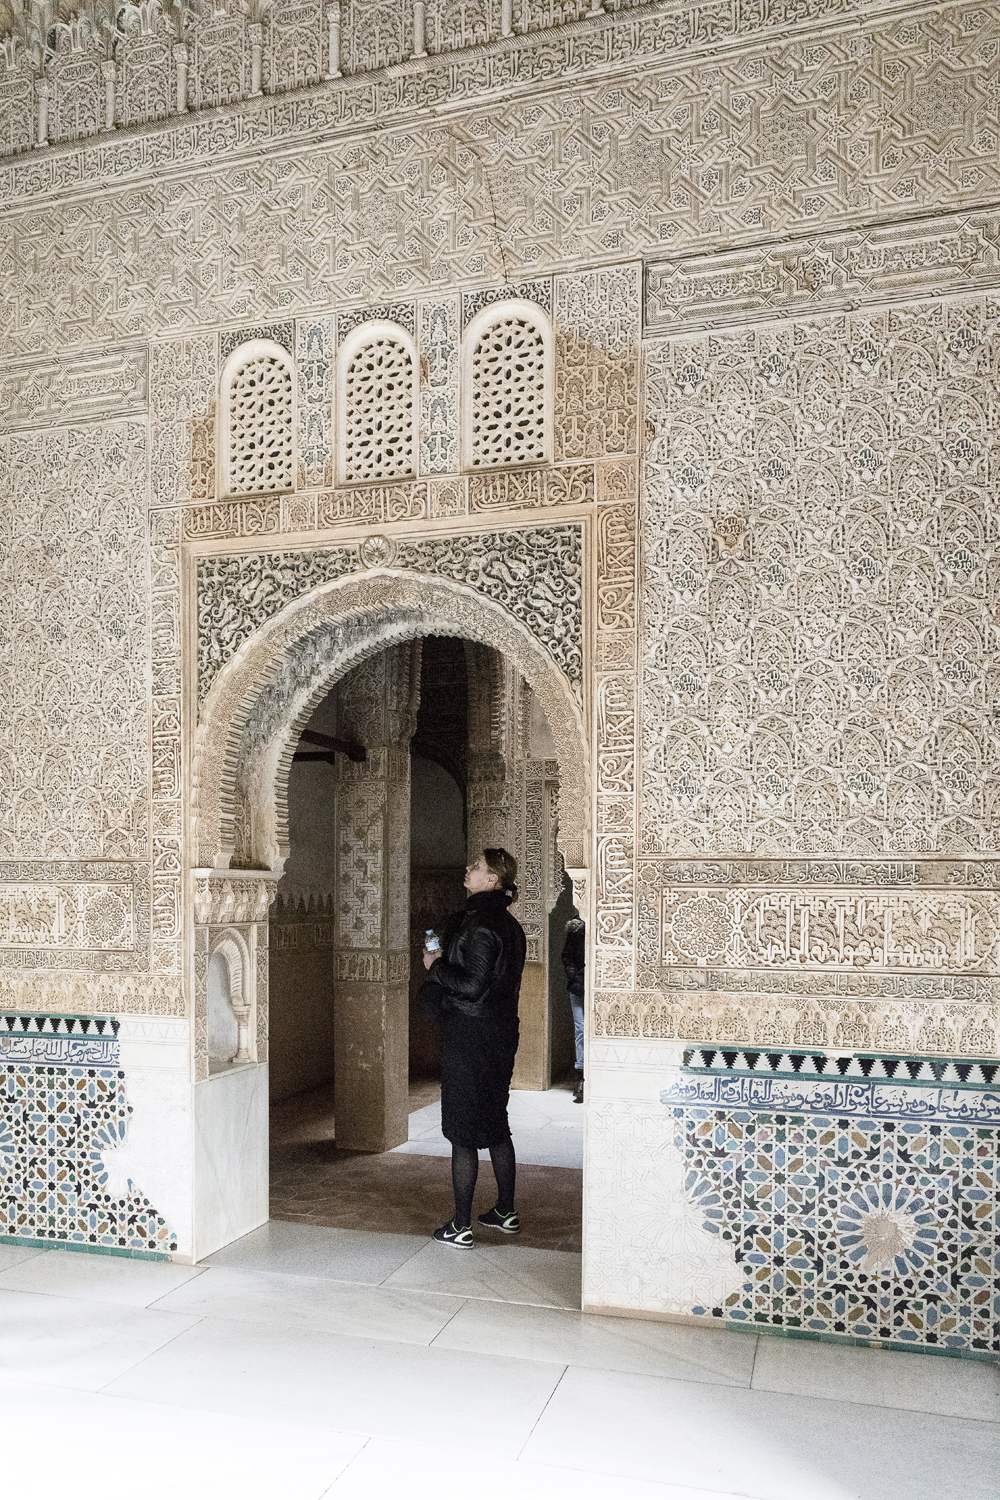 Alhambra, Granada, Spain, espanja, Andalucia, travelspain, Unesco world heritage, visitspain, travelling, photographer, photography, Frida Steiner, photographerlife, Visualaddict, visualaddictfrida, scenery, architecture, amazing architecture, outdoorphotography, outdoors